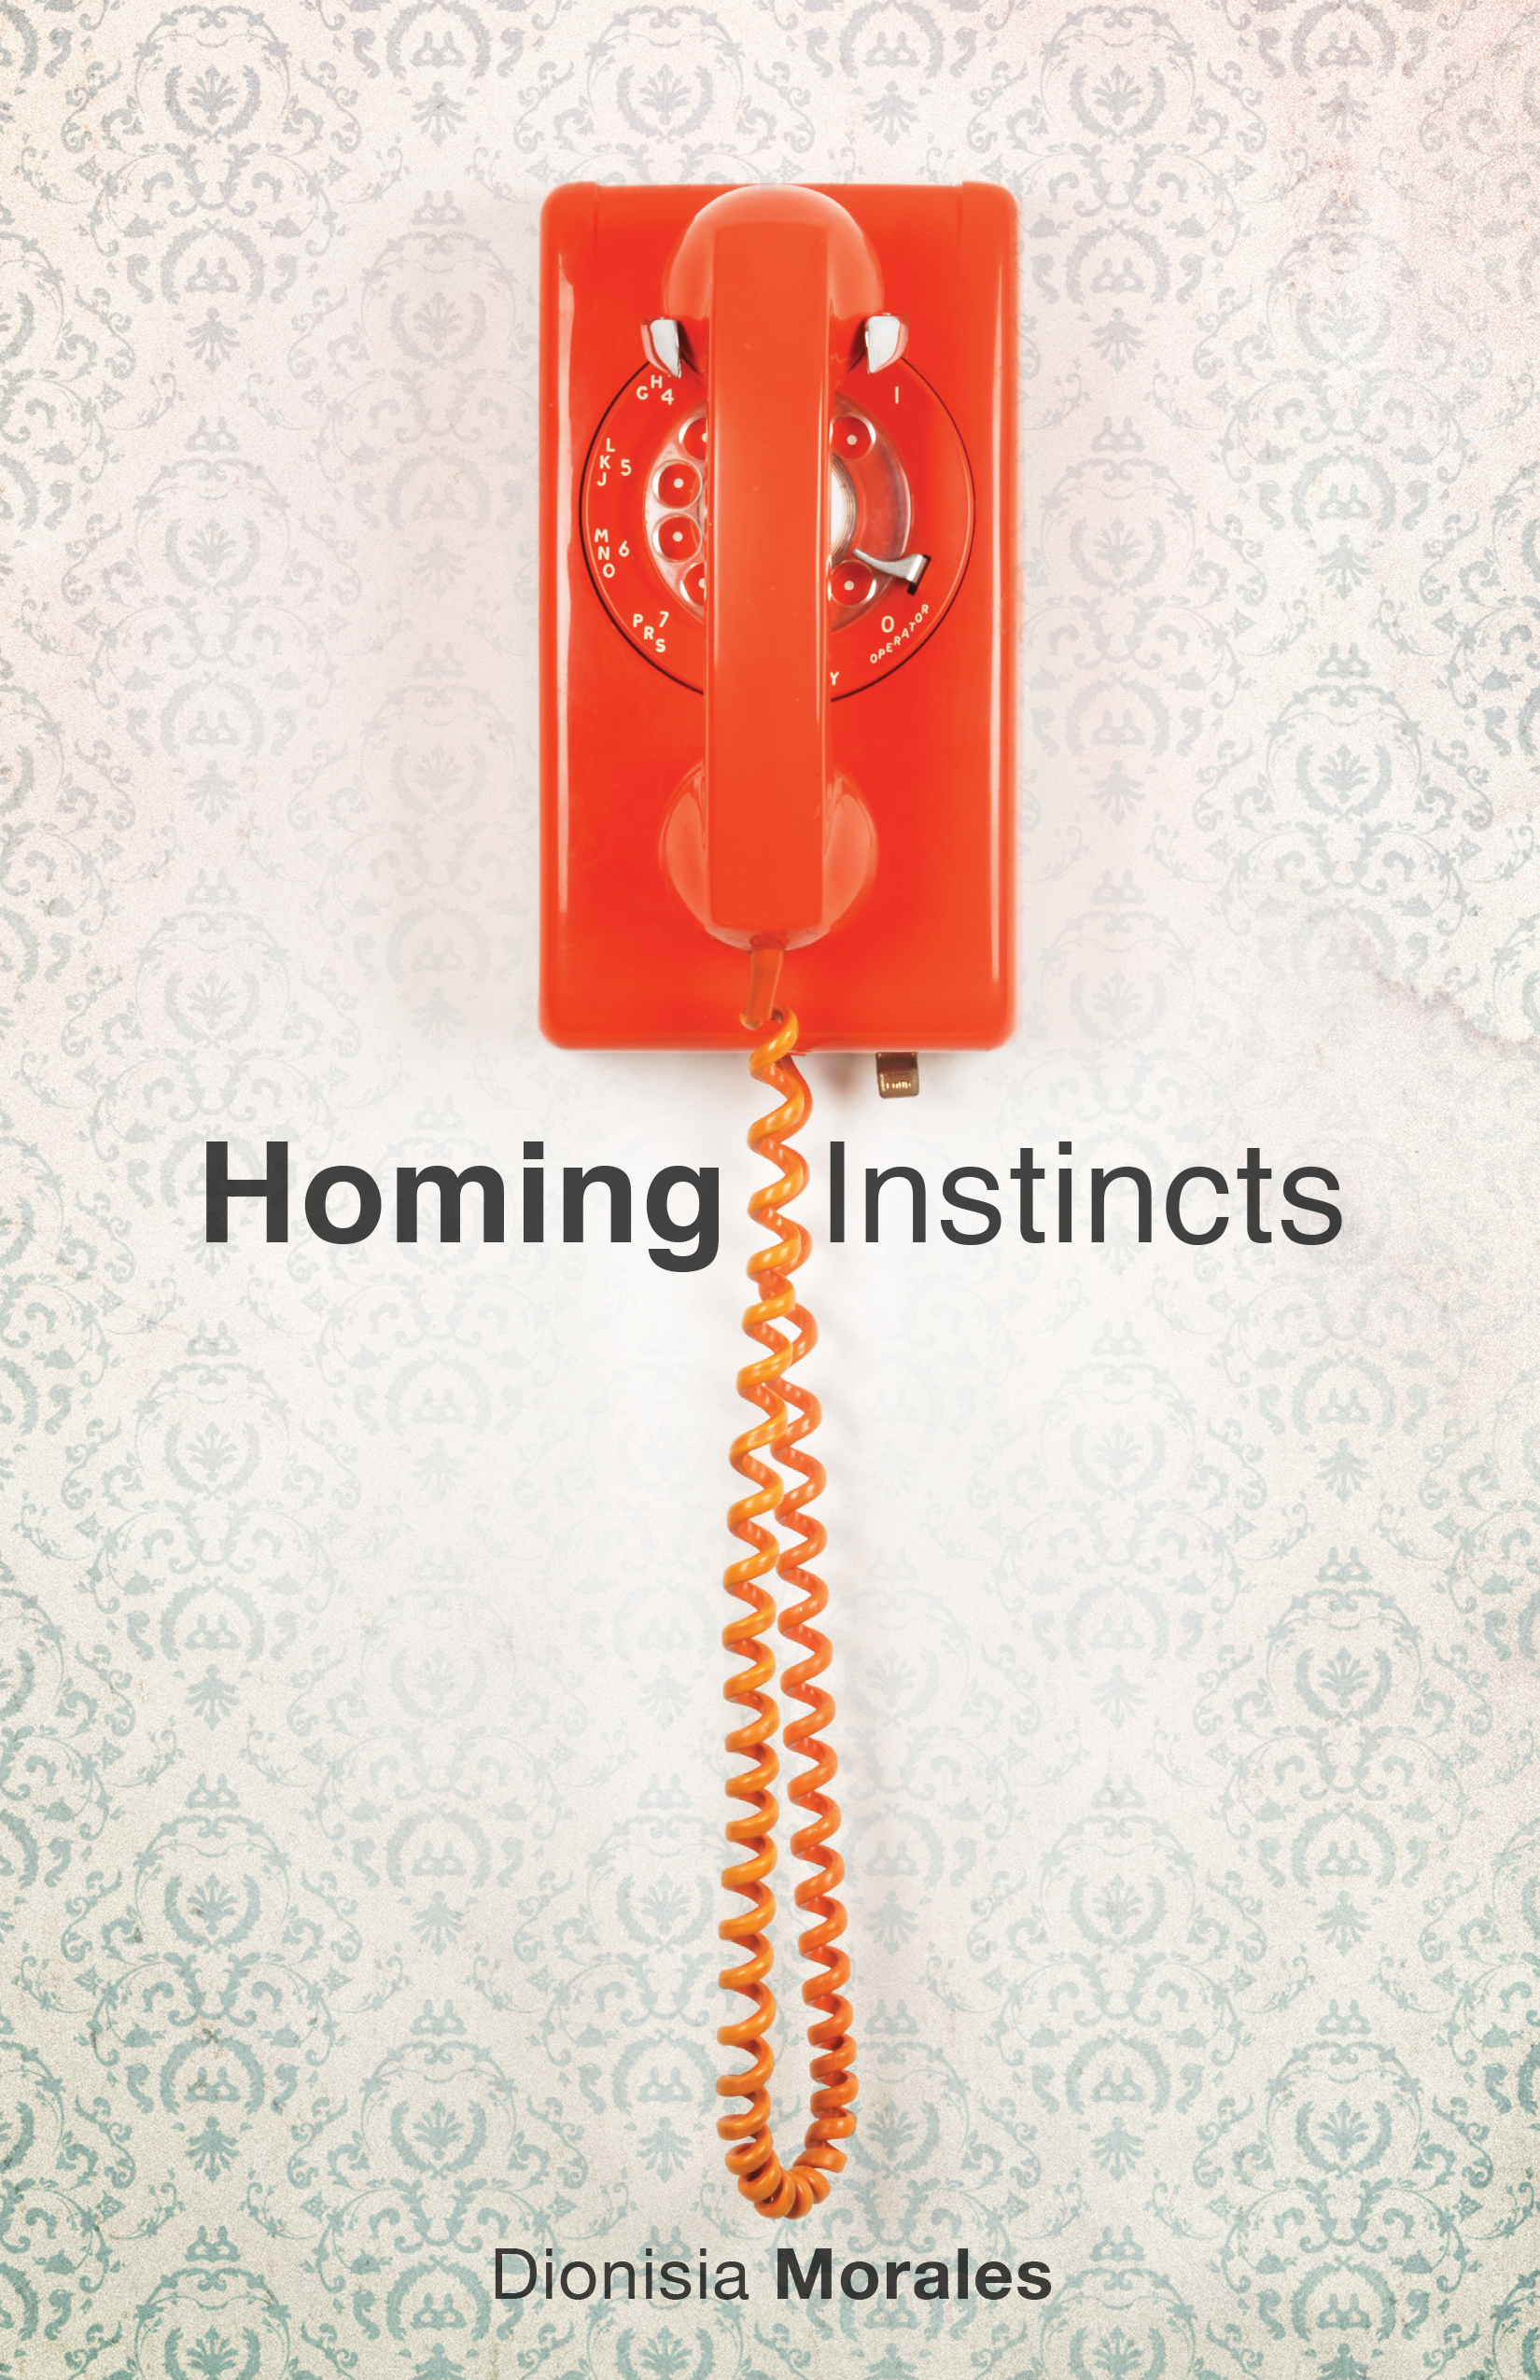 Homing Instincts by Dionisia Morales